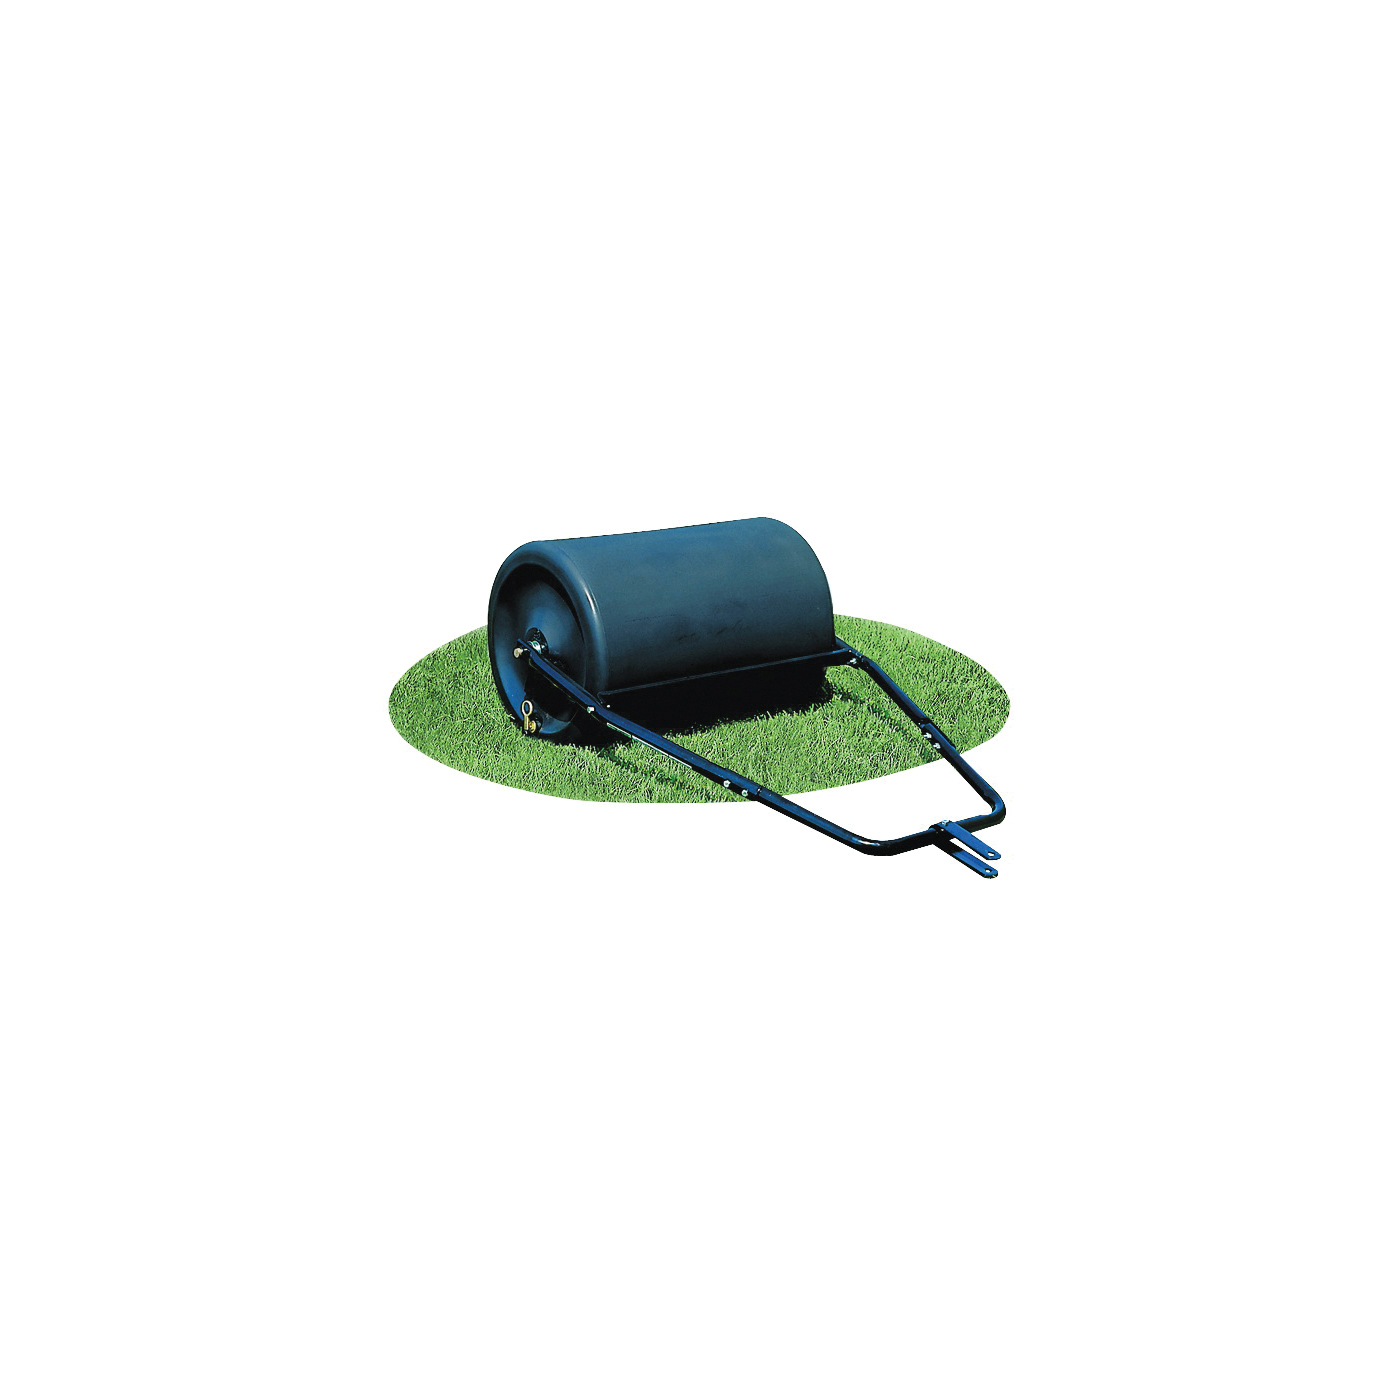 Picture of AGRI-FAB 45-0267 Lawn Roller, 250 lb Drum, Polyethylene/Steel